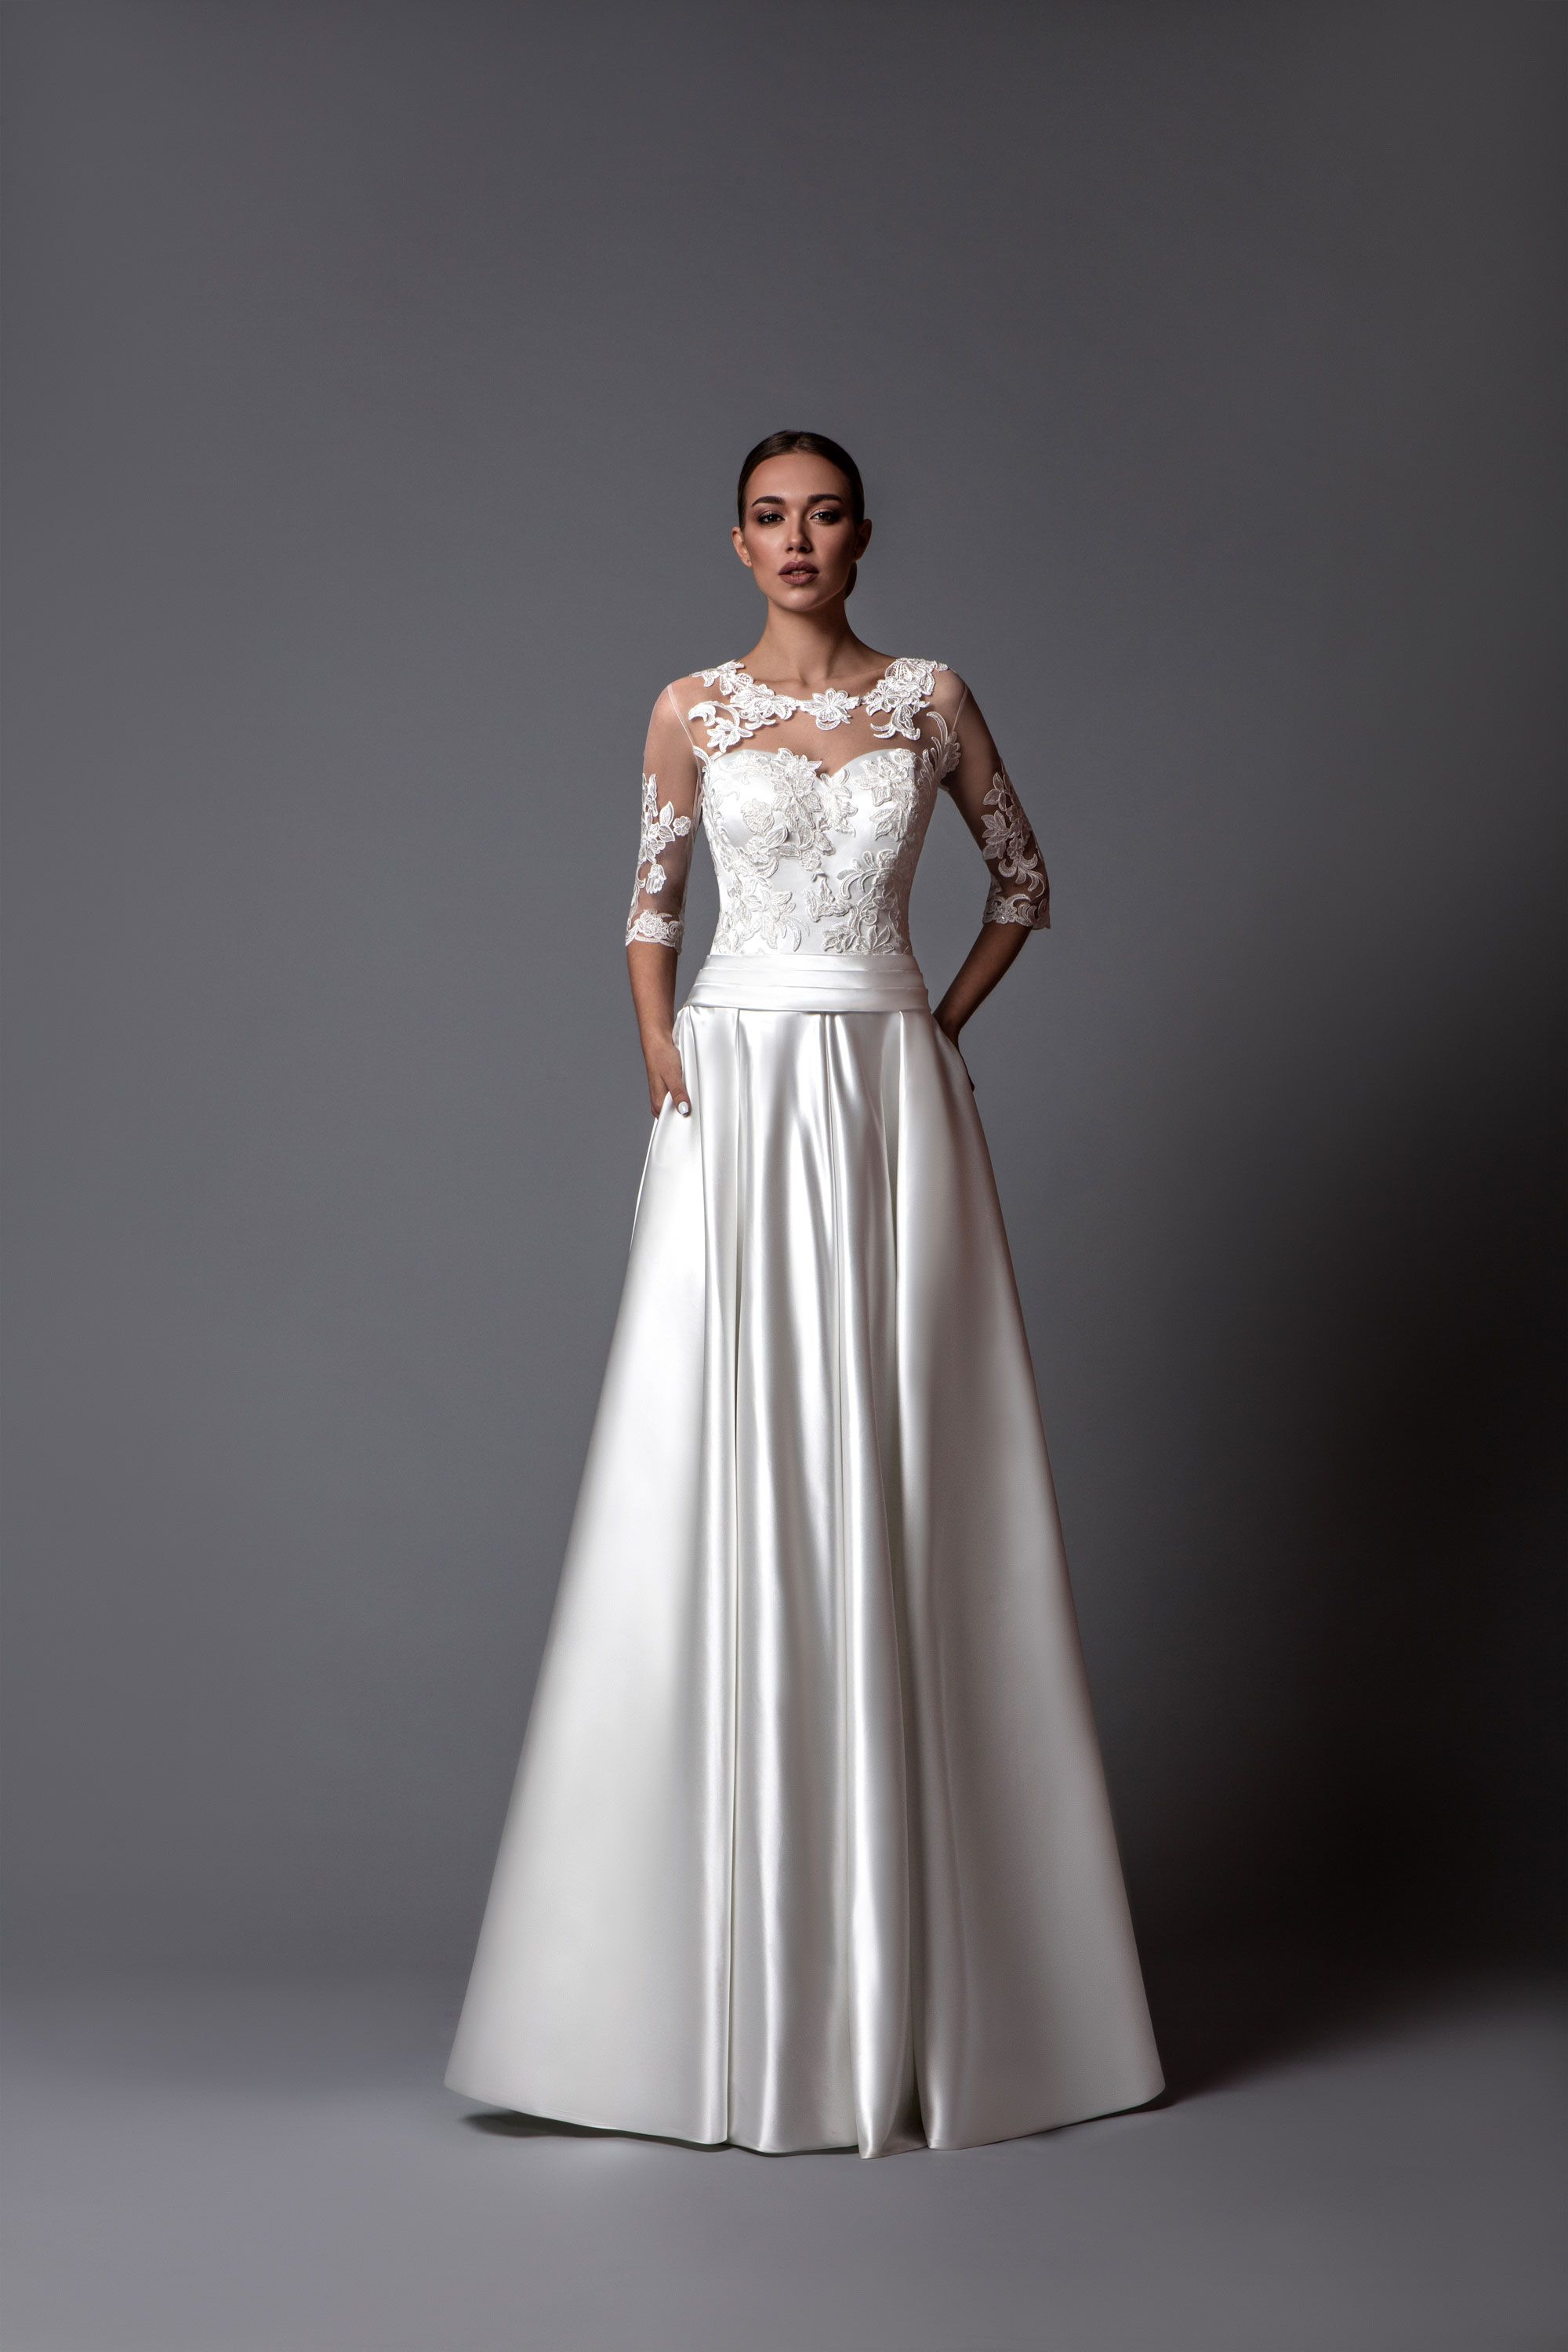 Delicate wedding dress madlen aline silhouette made of satin with